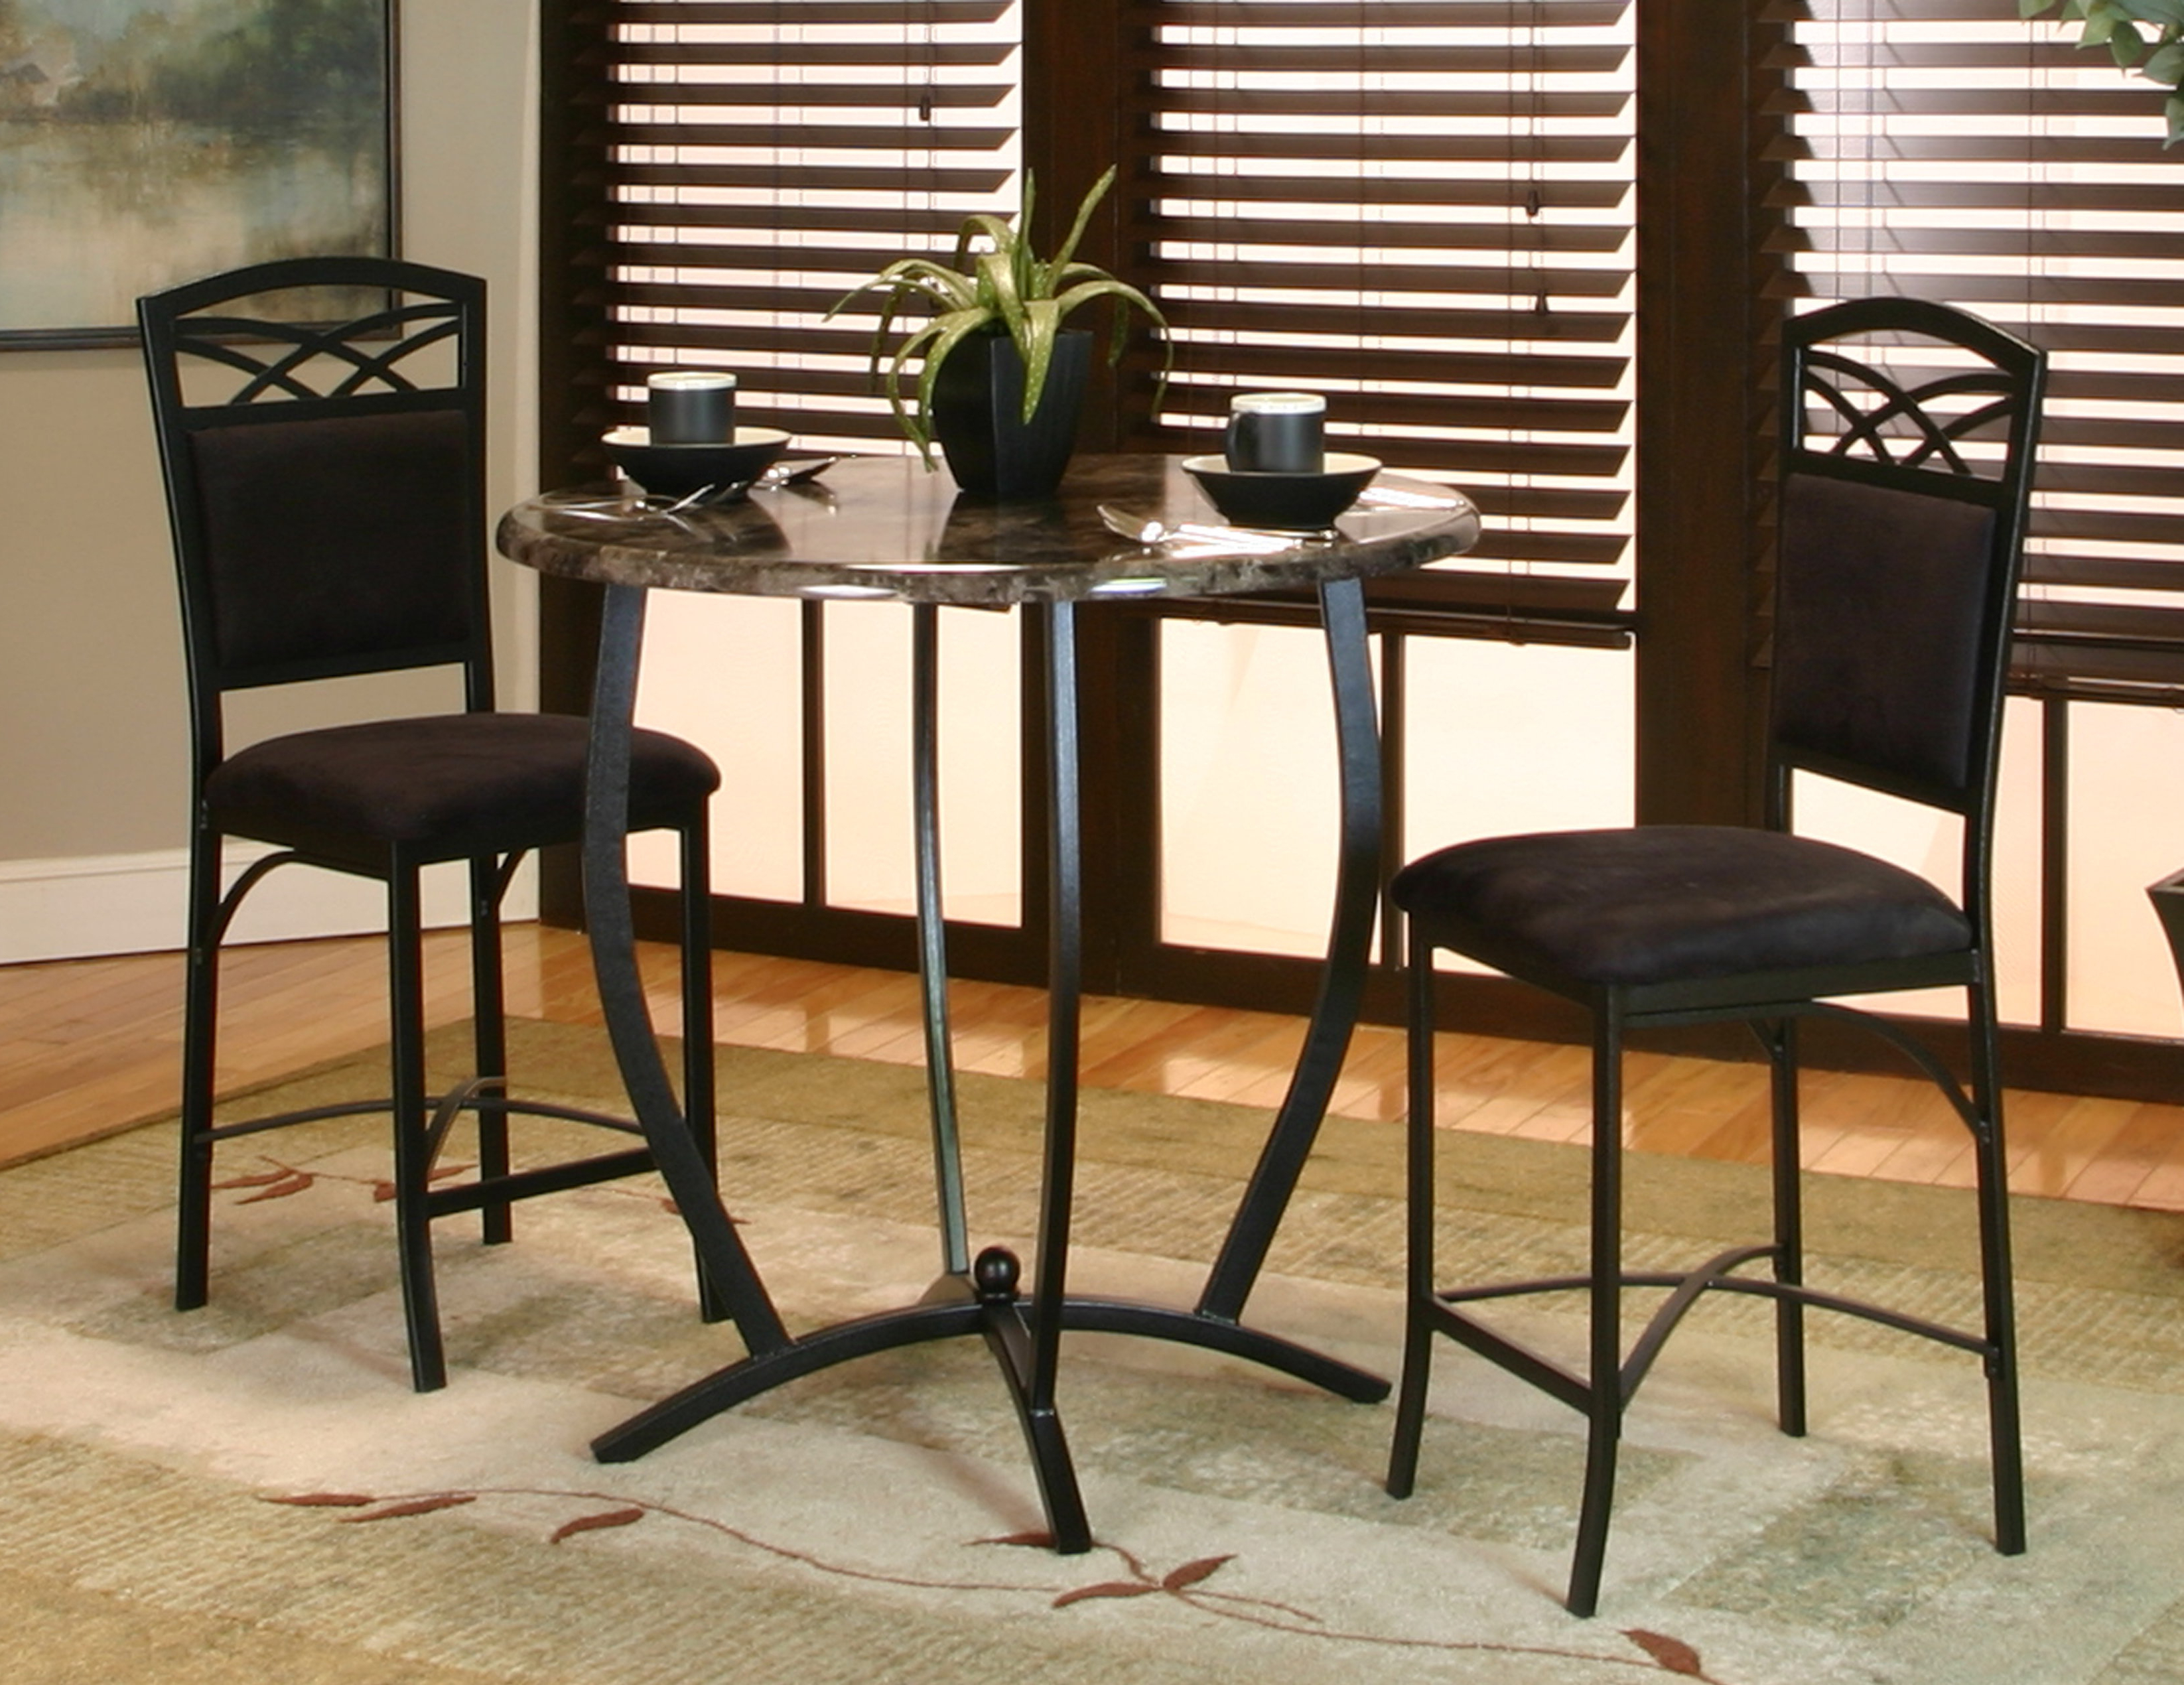 Mizpah 3 Piece Counter Height Dining Sets Inside Fashionable Jacob 3 Piece Counter Height Dining Set (View 8 of 20)